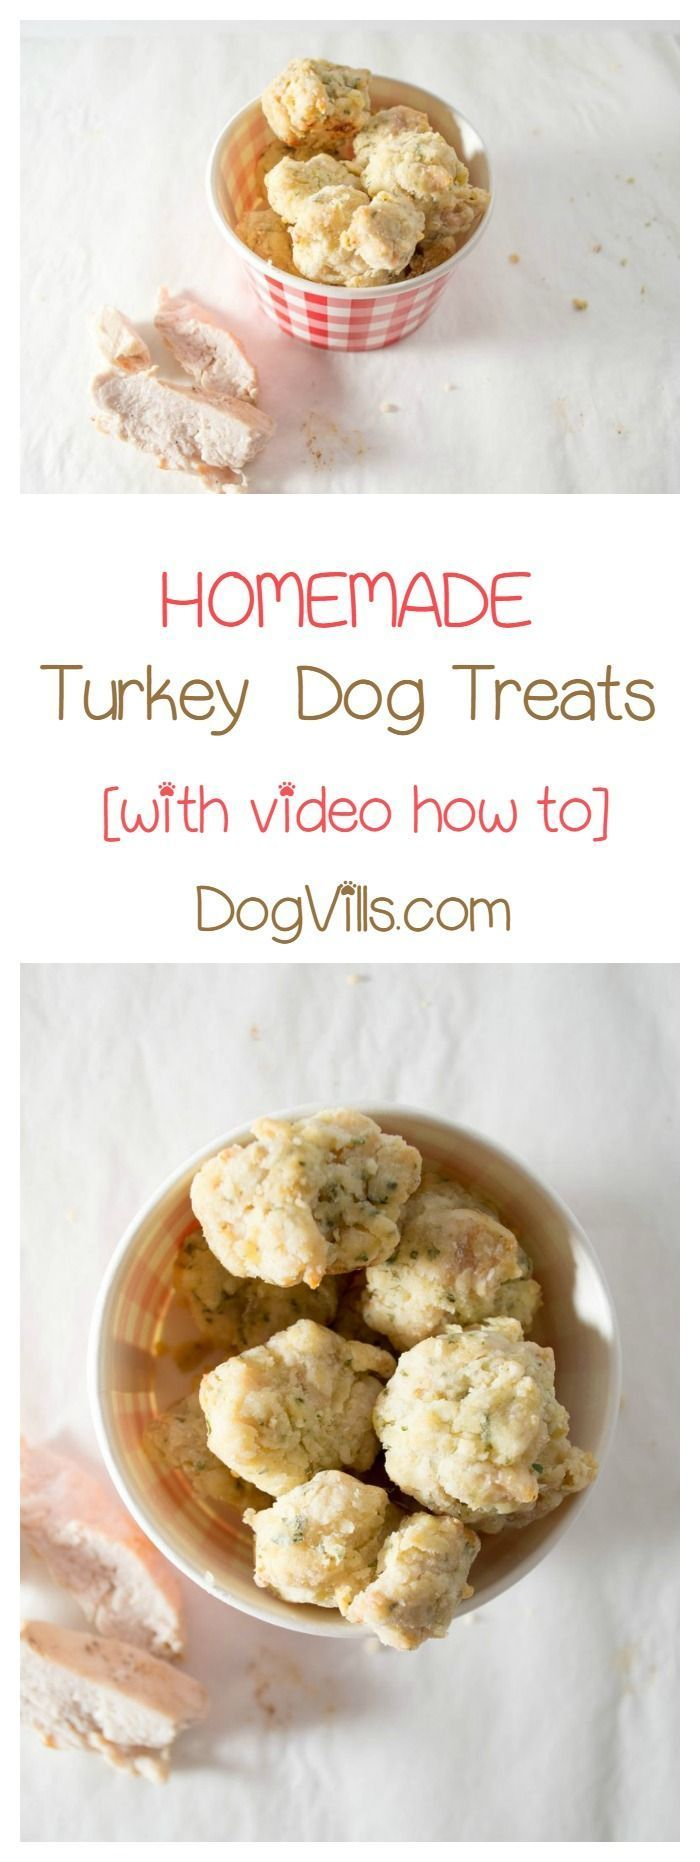 Food faith amp design thanksgiving goodies - Looking For Fun Thanksgiving Food For Dogs Check Out This Yummy Turkey Homemade Dog Treat